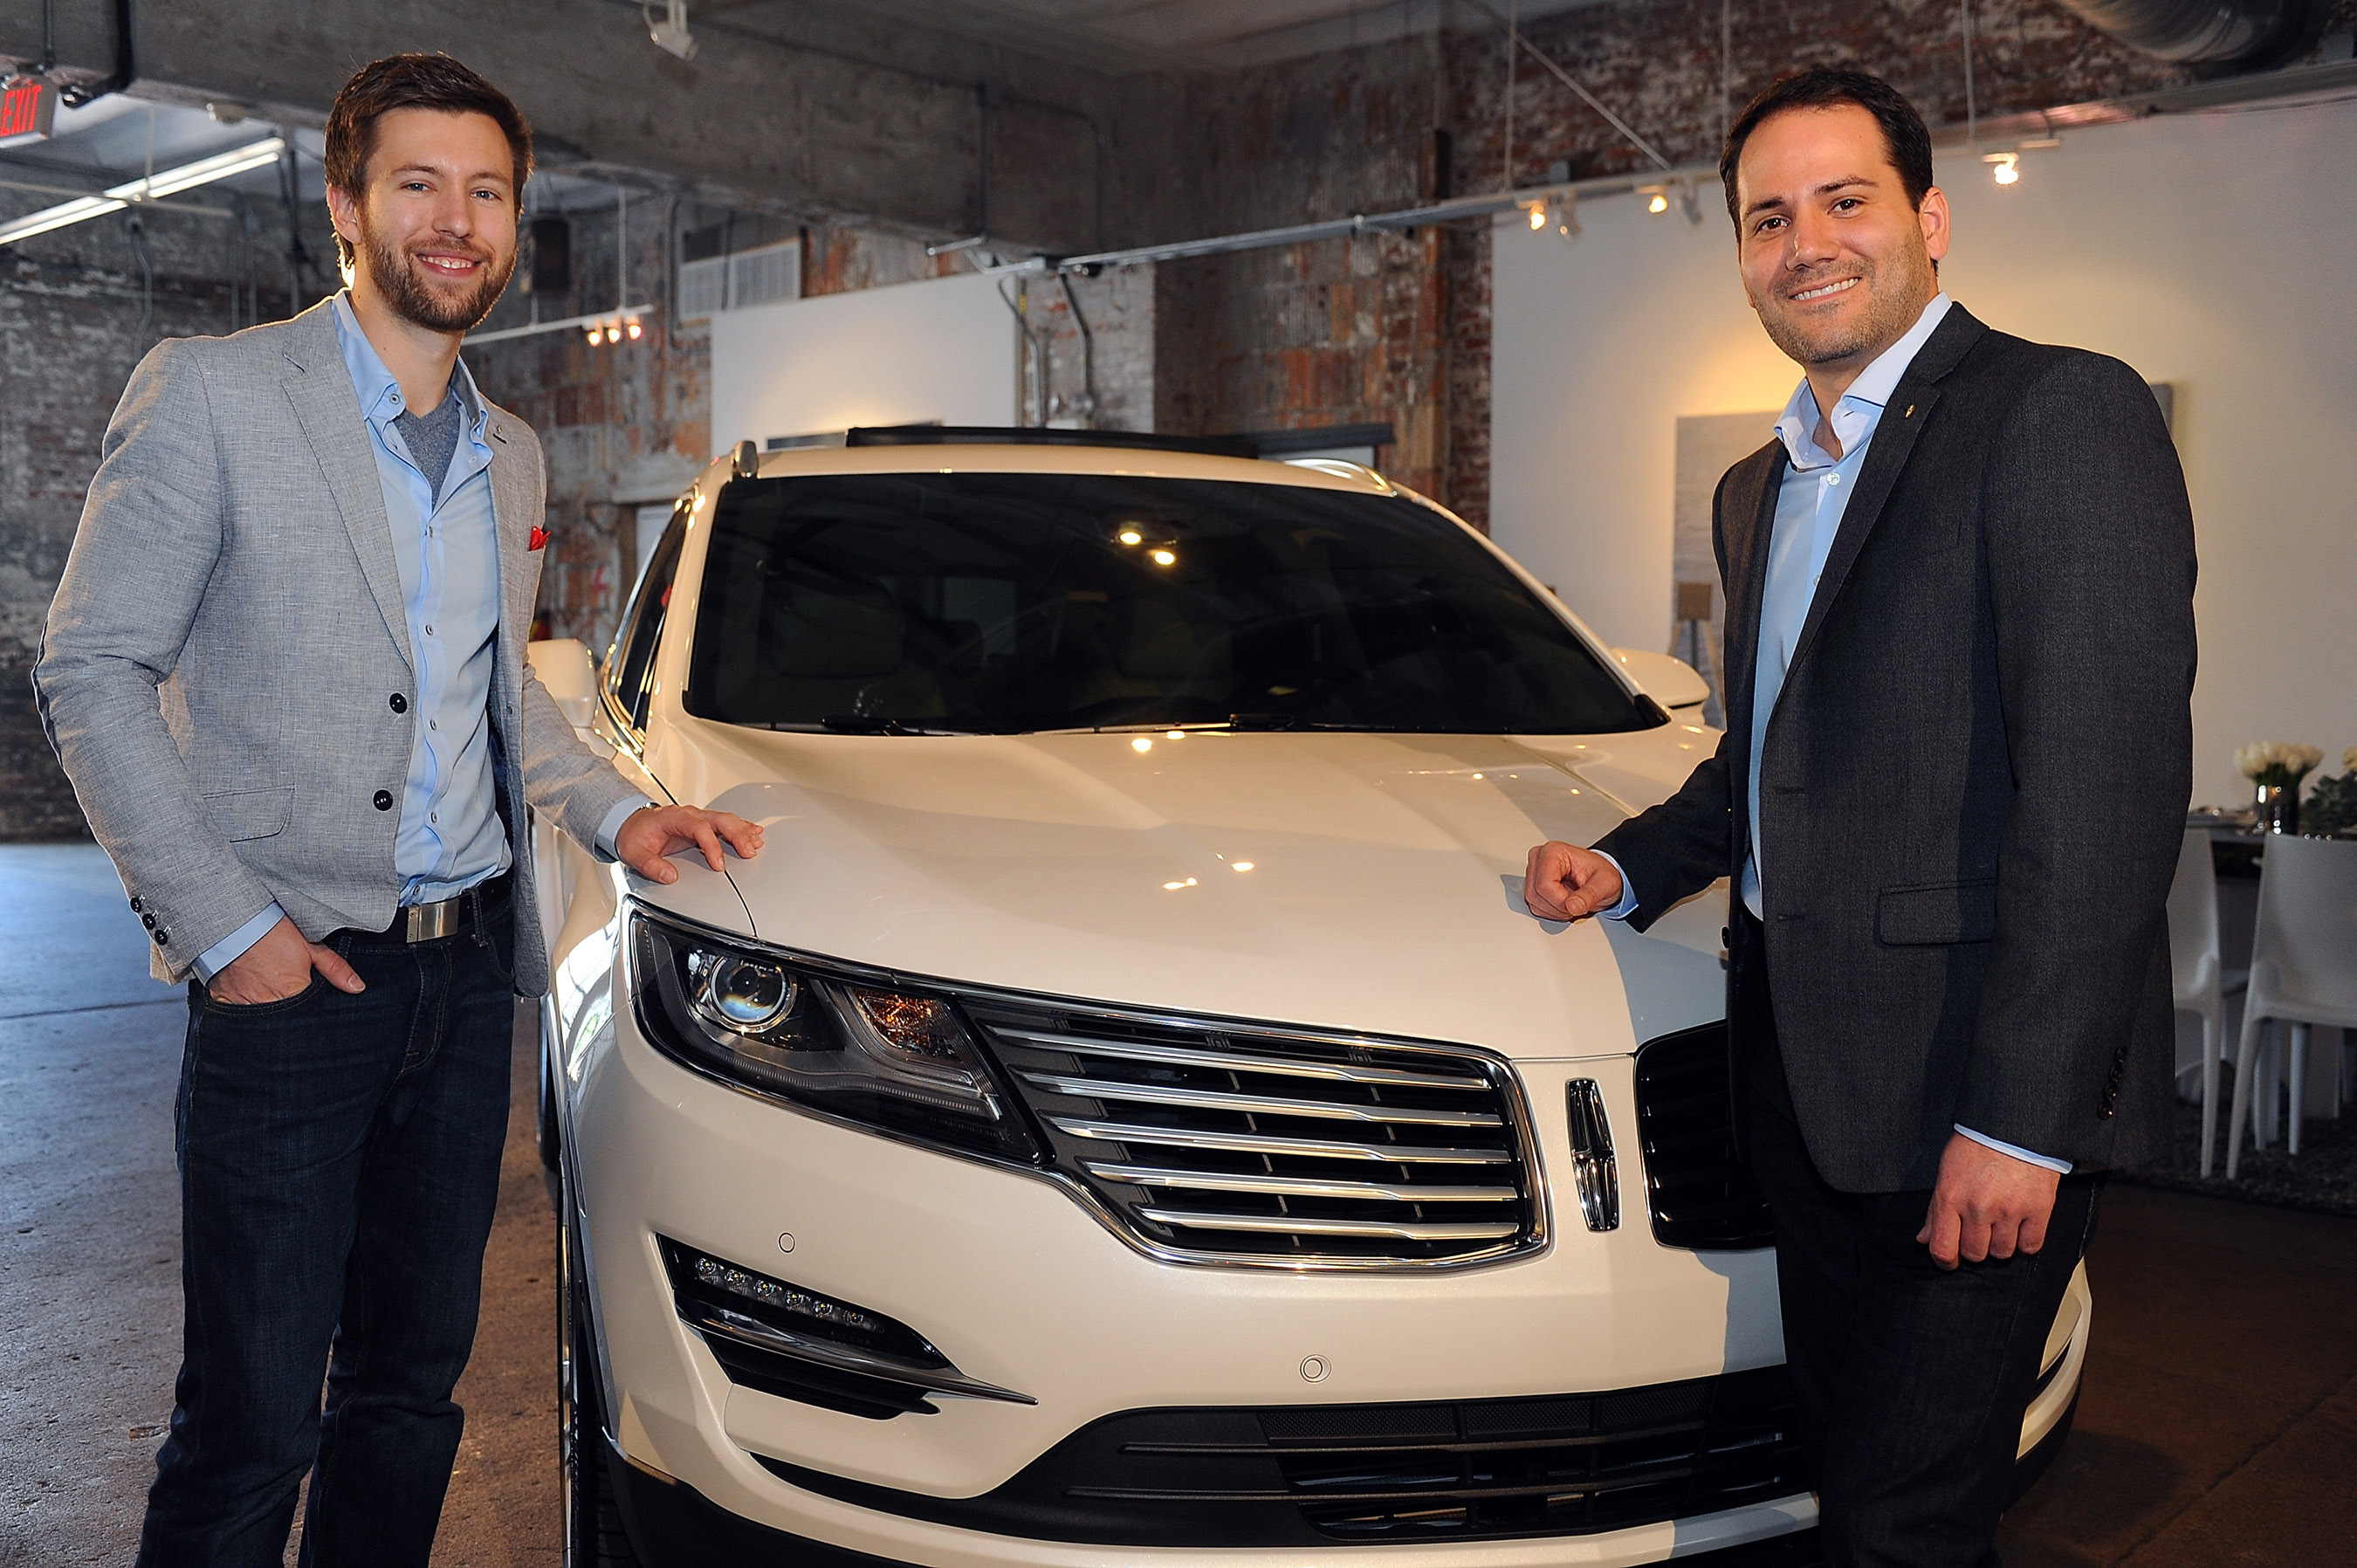 The 2015 Lincoln MKC, the brand's first small premium utility, is engaging the senses through a tour of cities this spring. On Monday, May 5, Dillon Blanski (left), Lincoln MKC exterior designer, and Antonio Molinari, Lincoln MKC interior designer, discussed progressive, classic design with a modern twist during a luncheon at Long View Gallery in Washington, D.C. Photo credit: Getty Images for The Lincoln Motor Company.